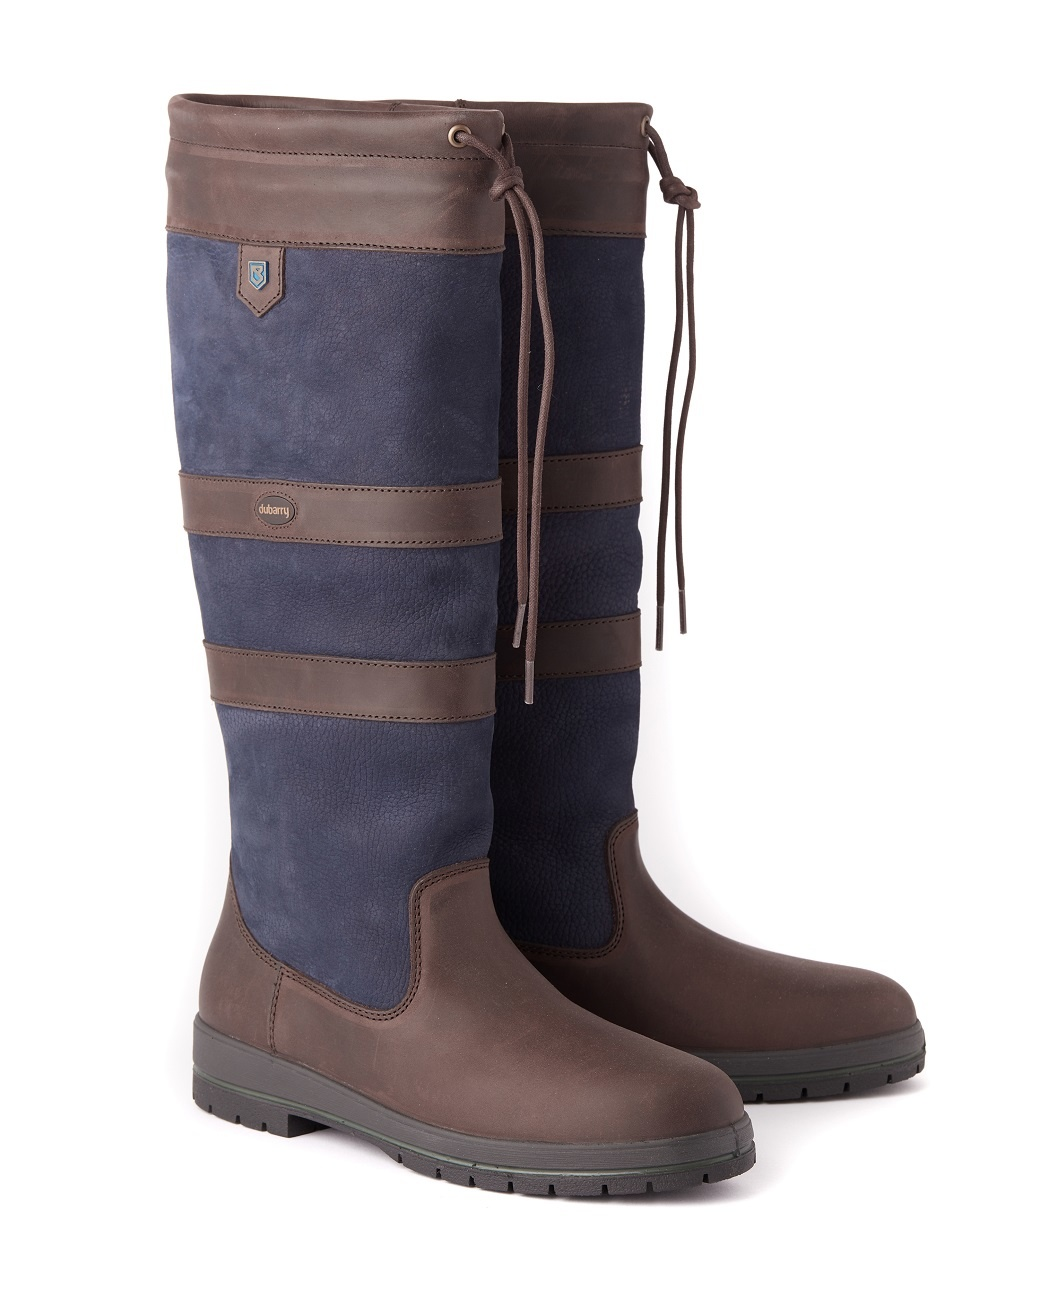 Dubarry Galway Extrafit™- Navy/Brown-1